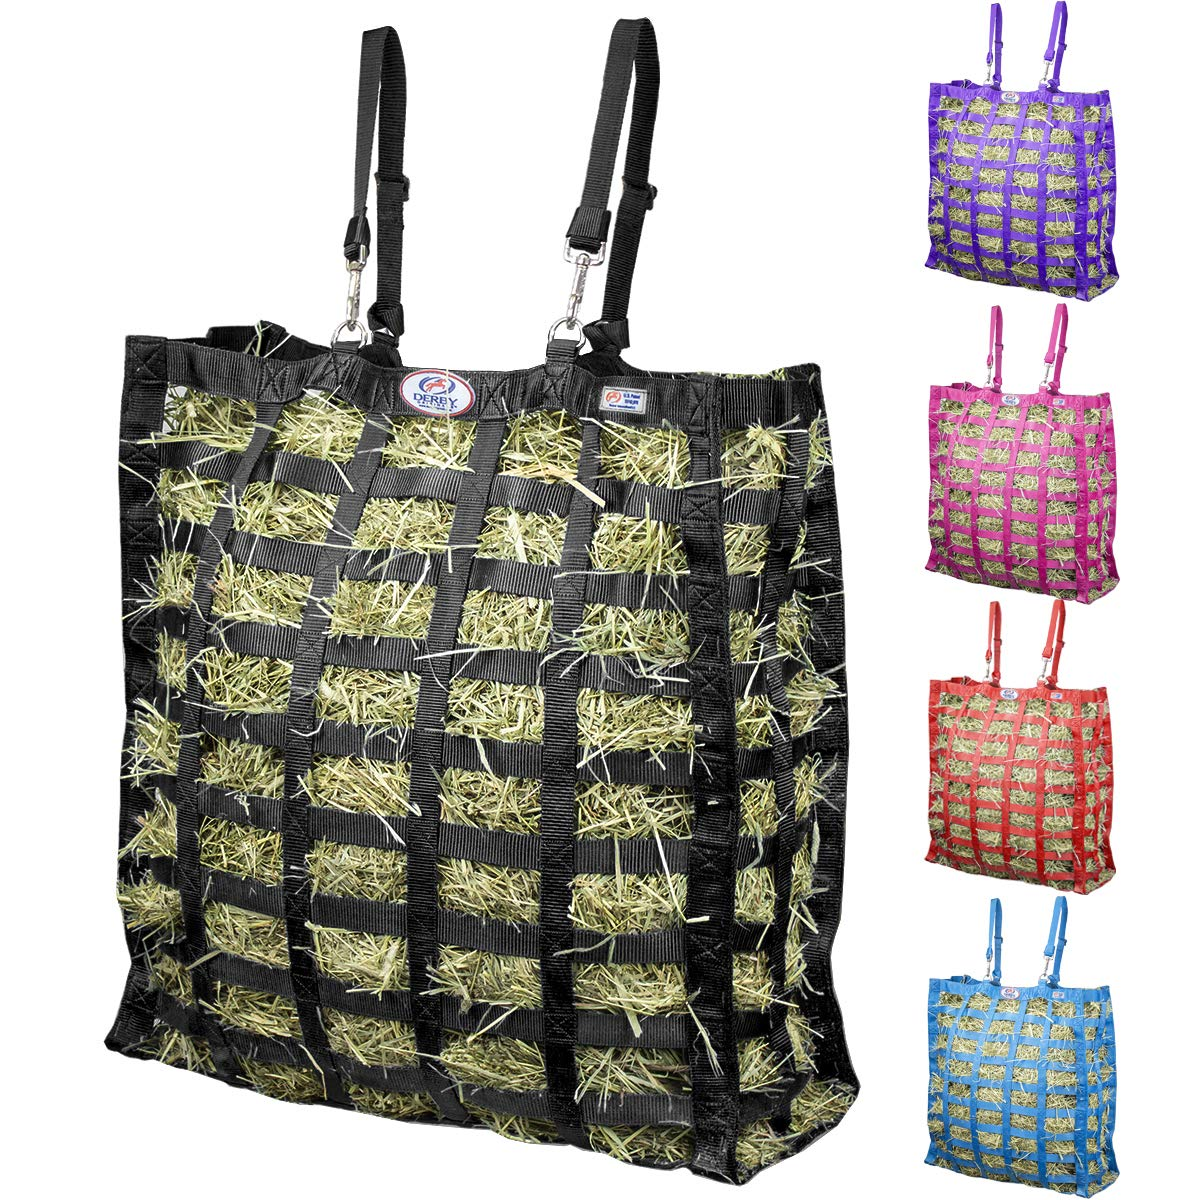 Slow Feeders for Horses - Derby Originals Supreme Patented Four-Sided Slow Feed Horse Hay Bag